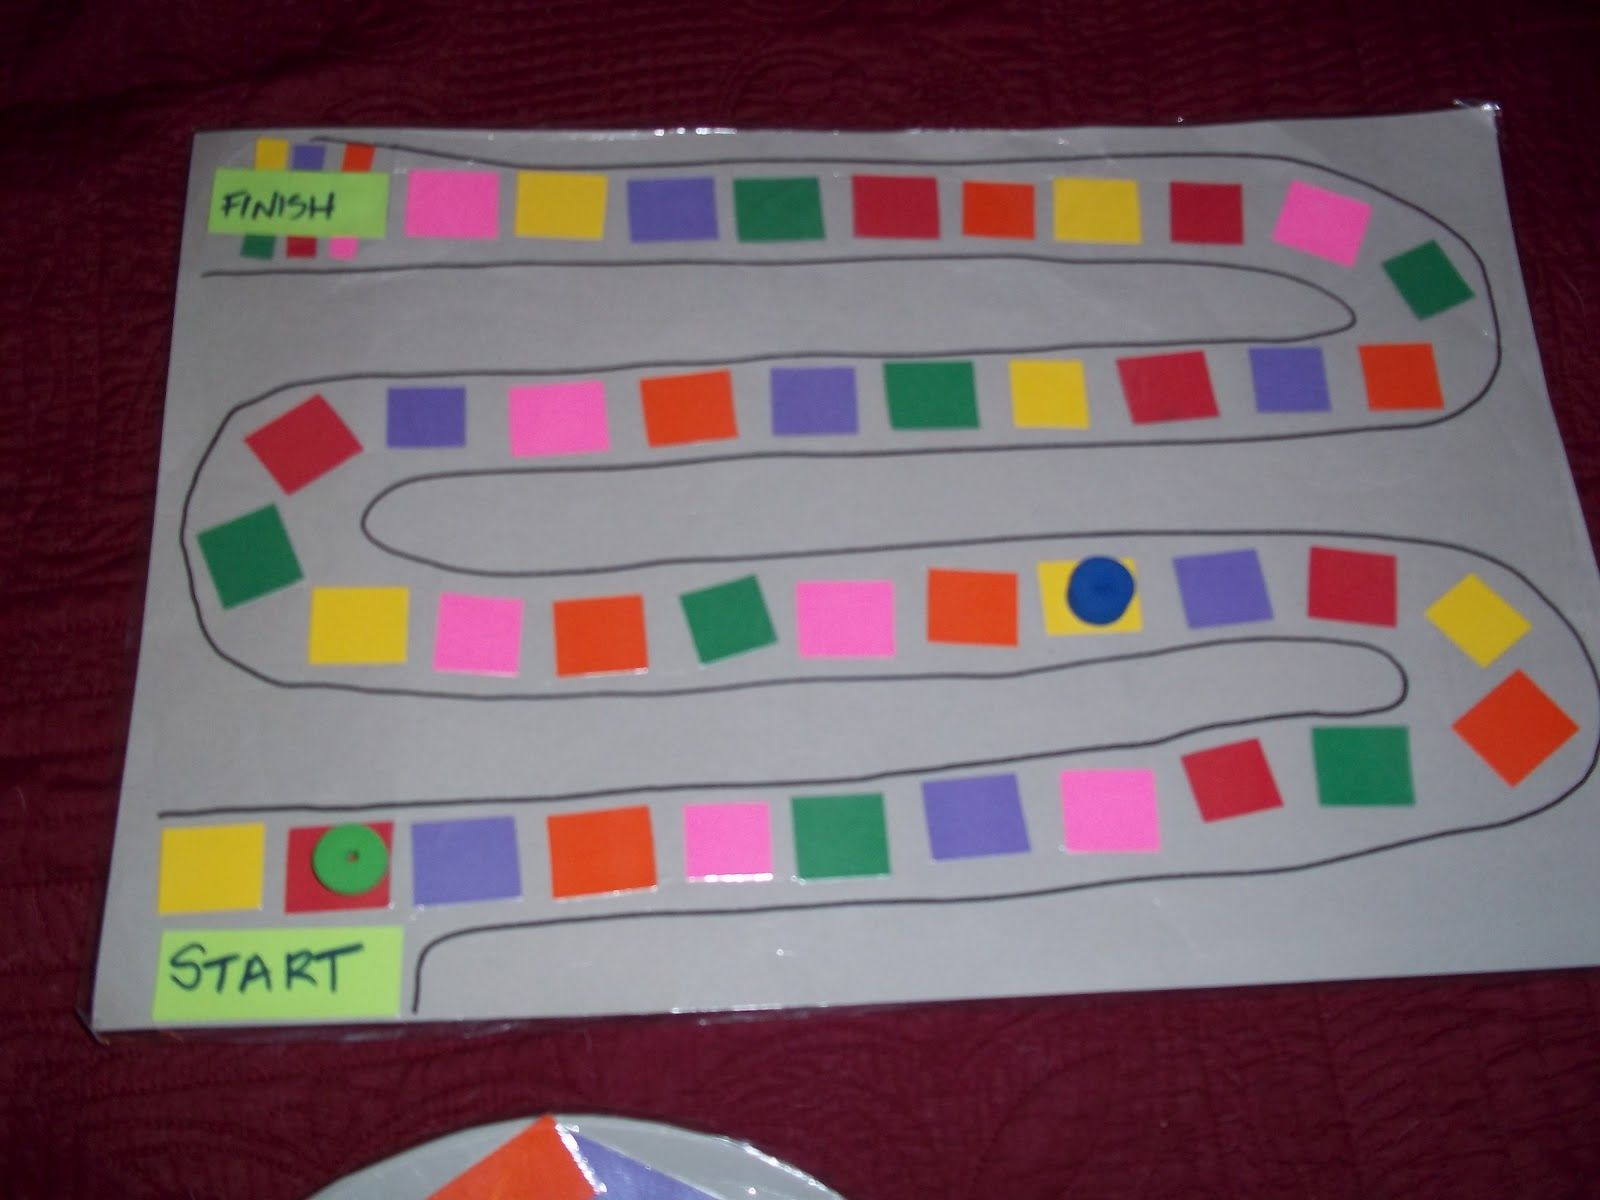 spinner board game Google Search Homemade board games